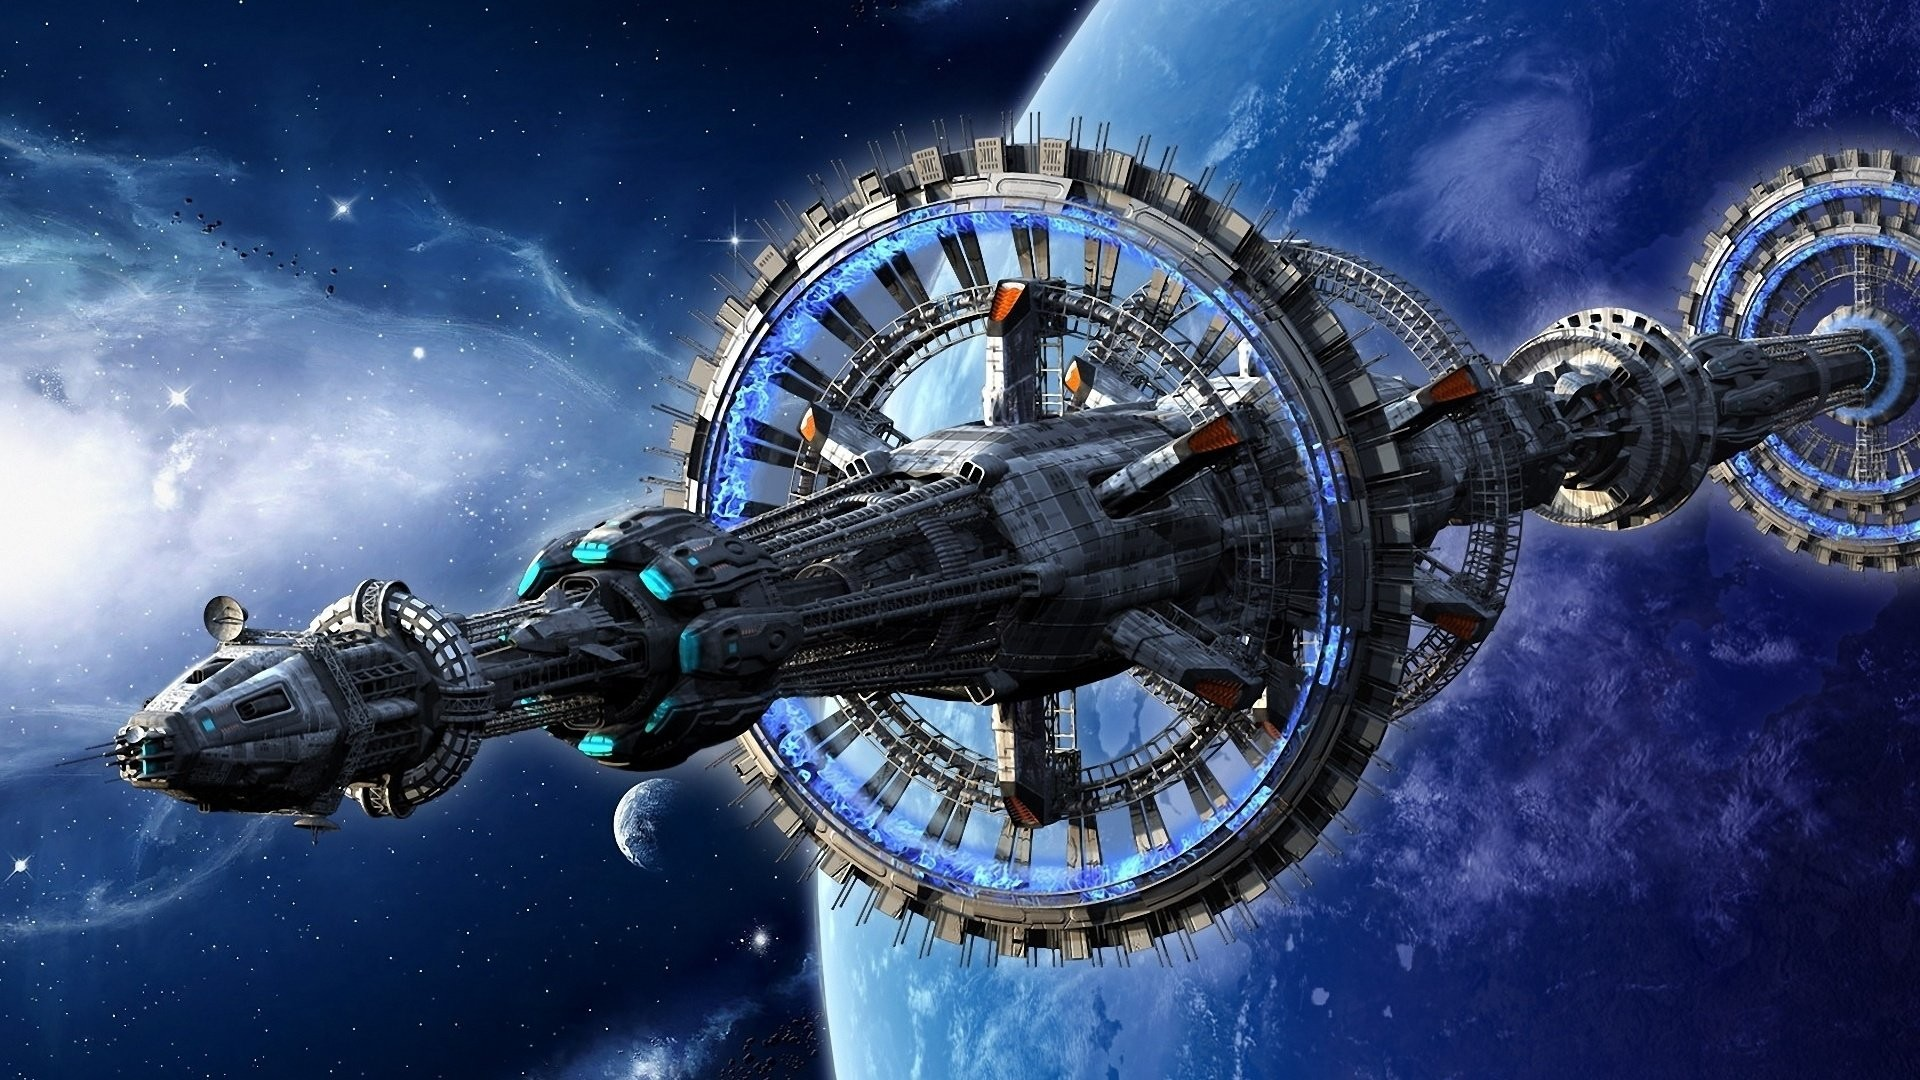 11 best hologram images on Pinterest   Sci fi, Science fiction and Spaceship  interior